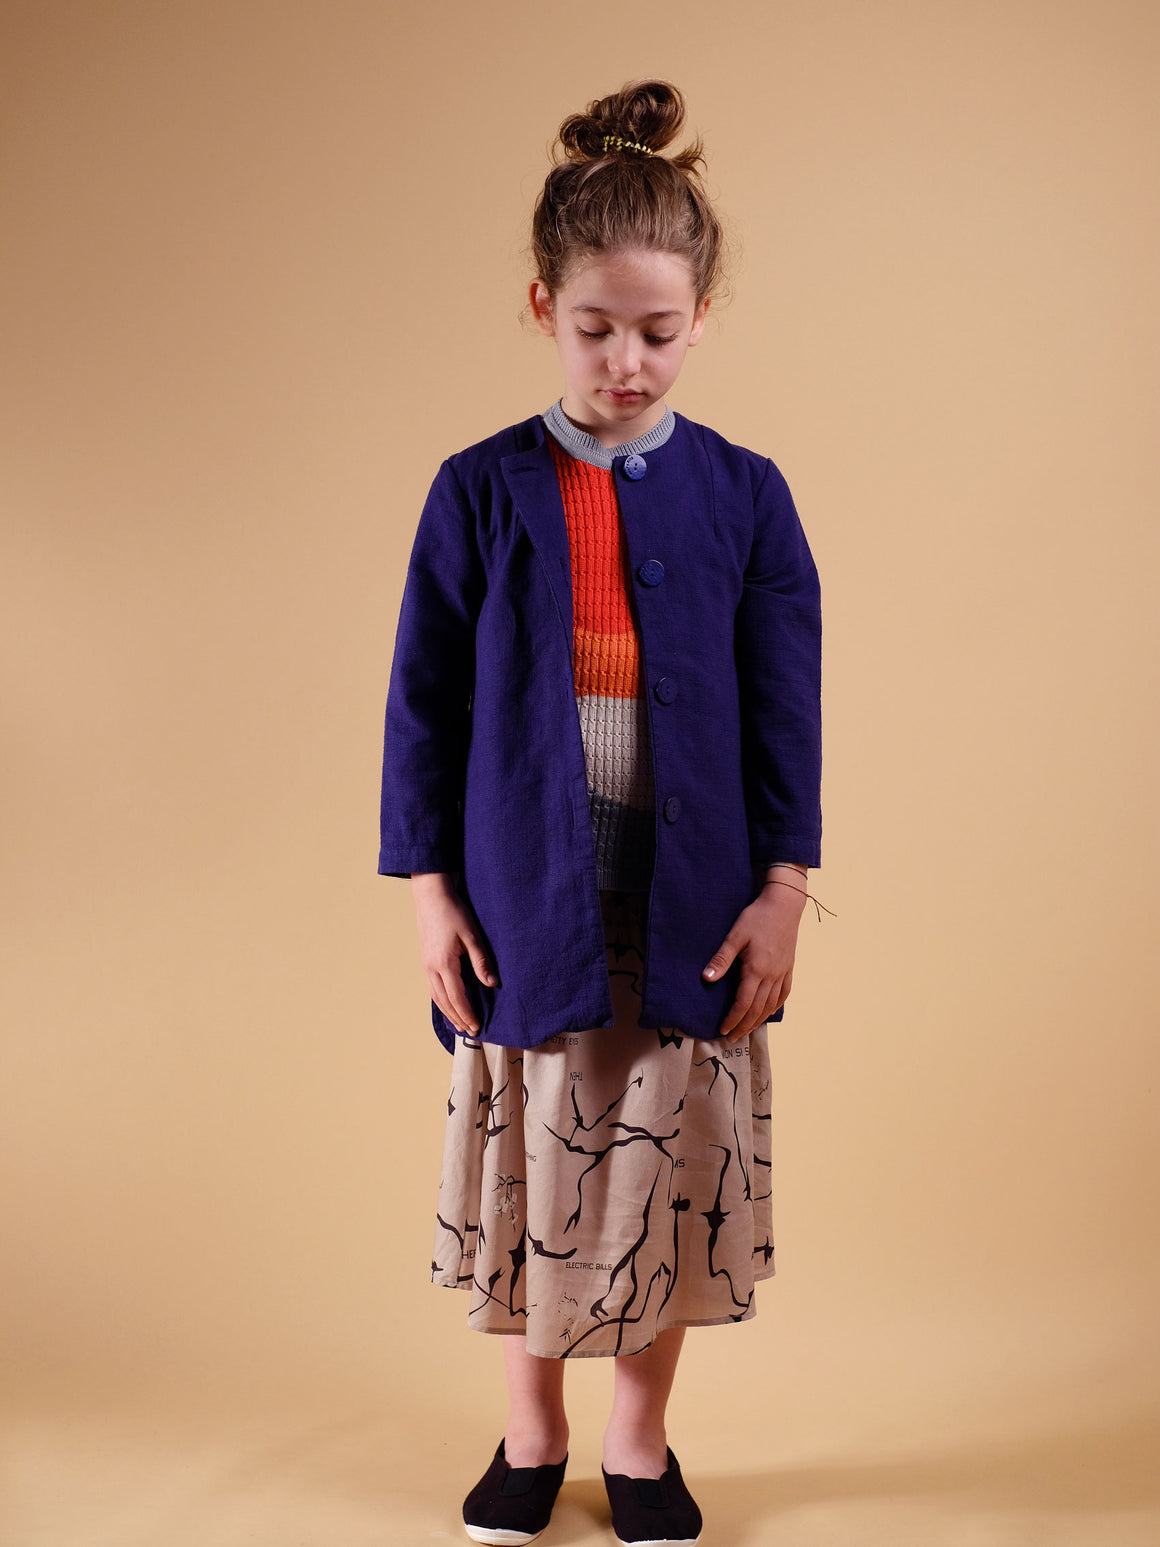 WOLF & RITA Lurdes Skirt This Is Now - Last One!! Size: 6Y